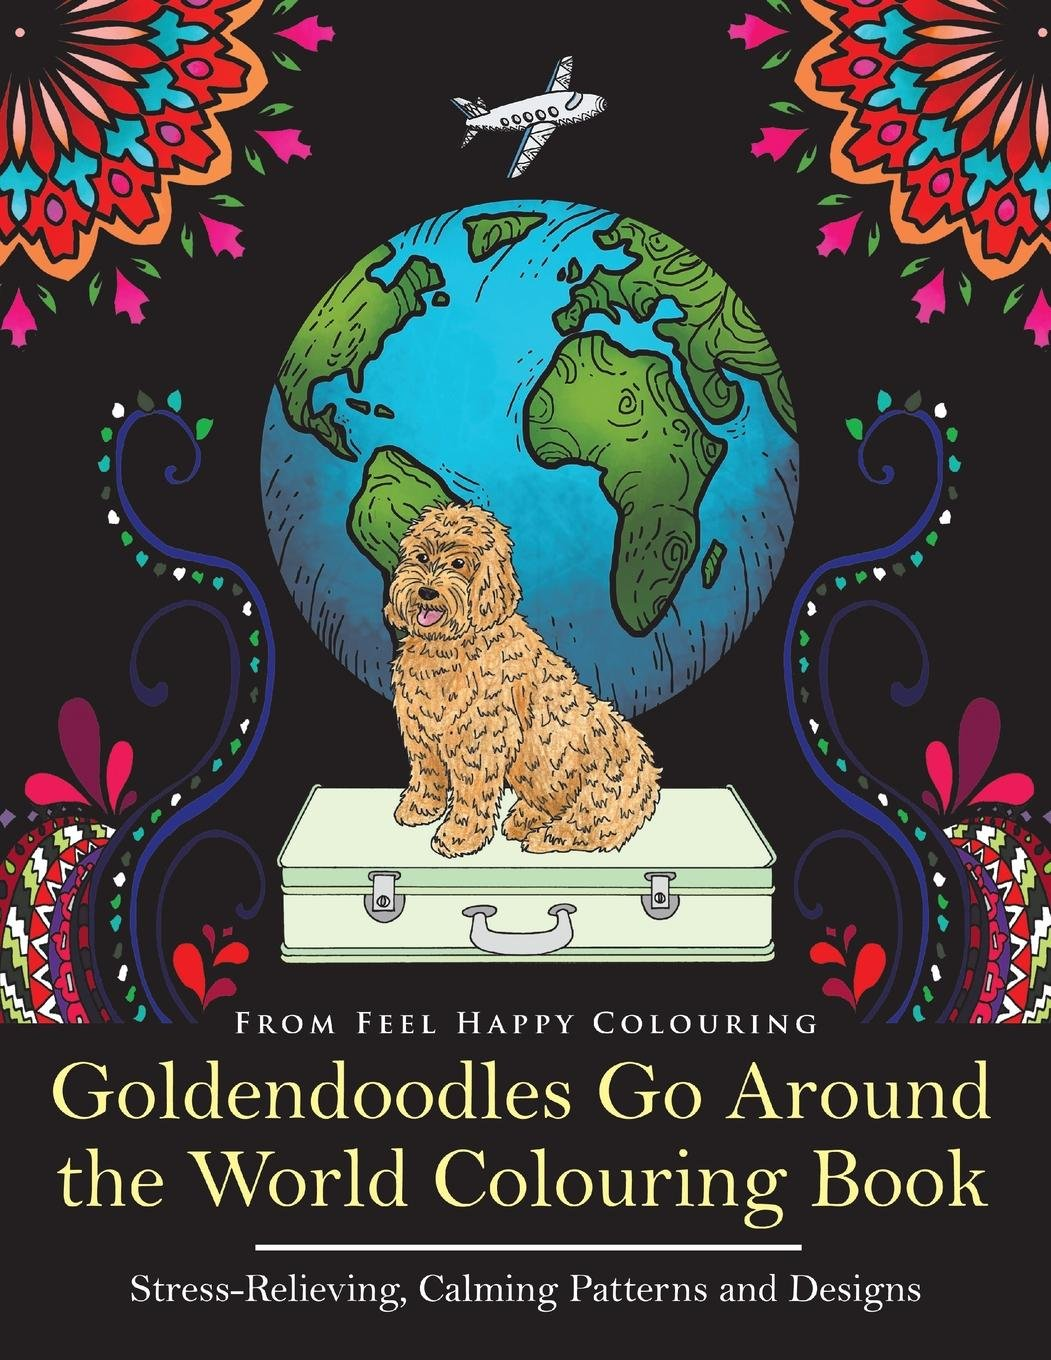 Download Goldendoodles Go Around the World Colouring Book: Goldendoodle Coloring Book - Perfect Goldendoodle Gifts Idea for Adults and Older Kids (Volume 1) PDF